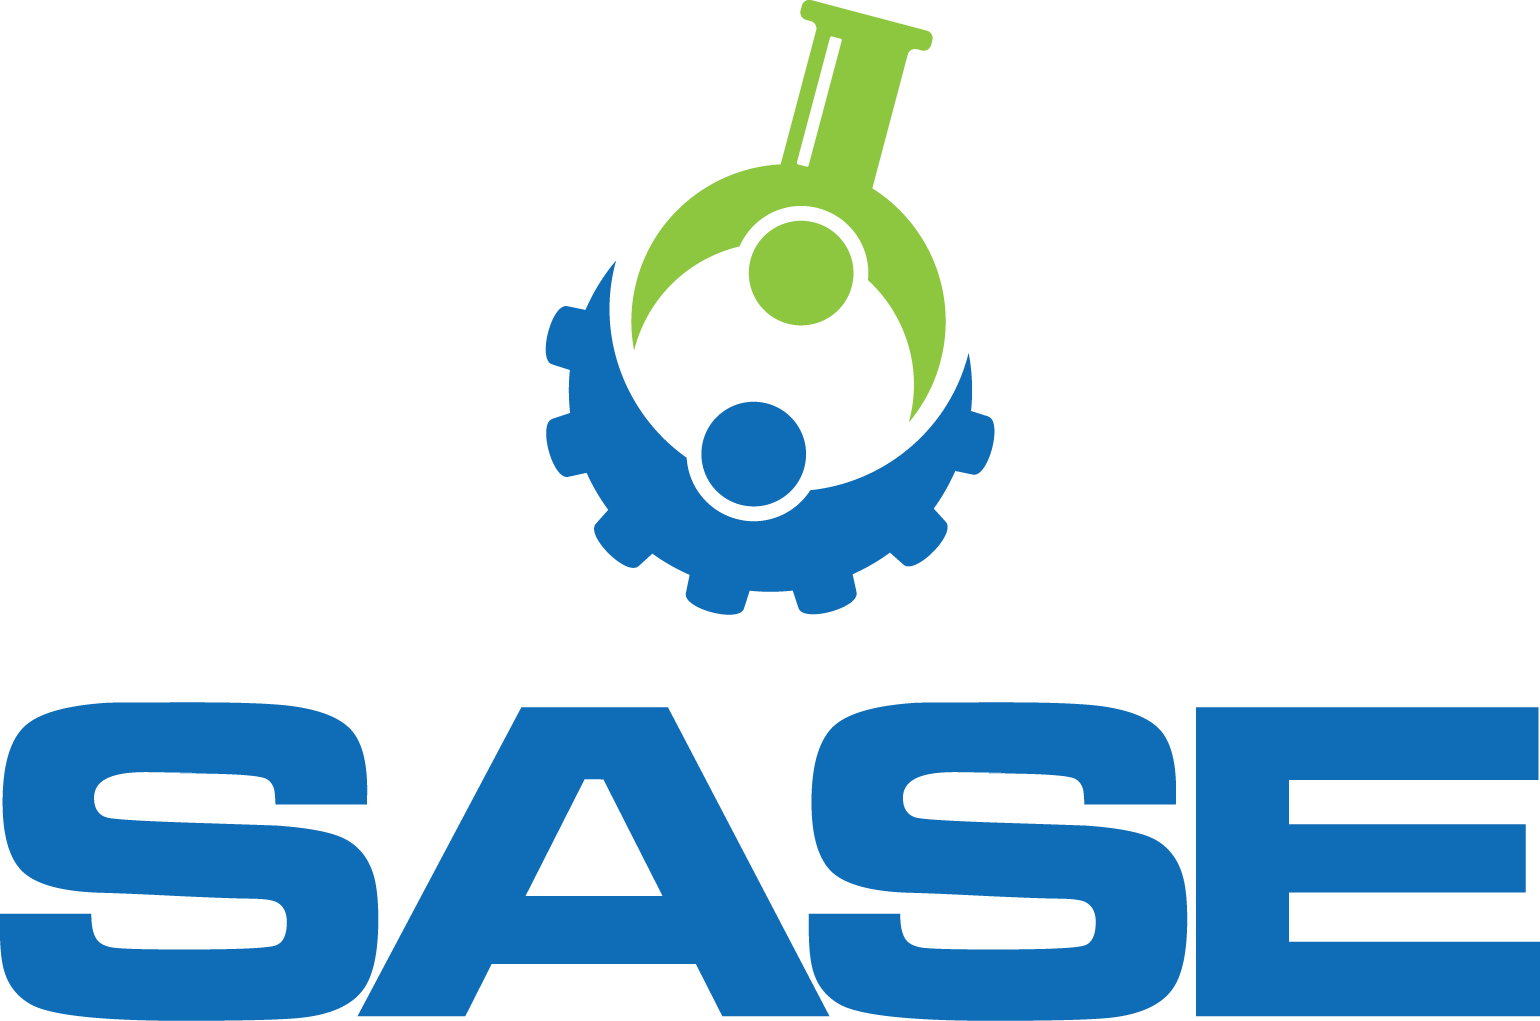 SASE colored logo